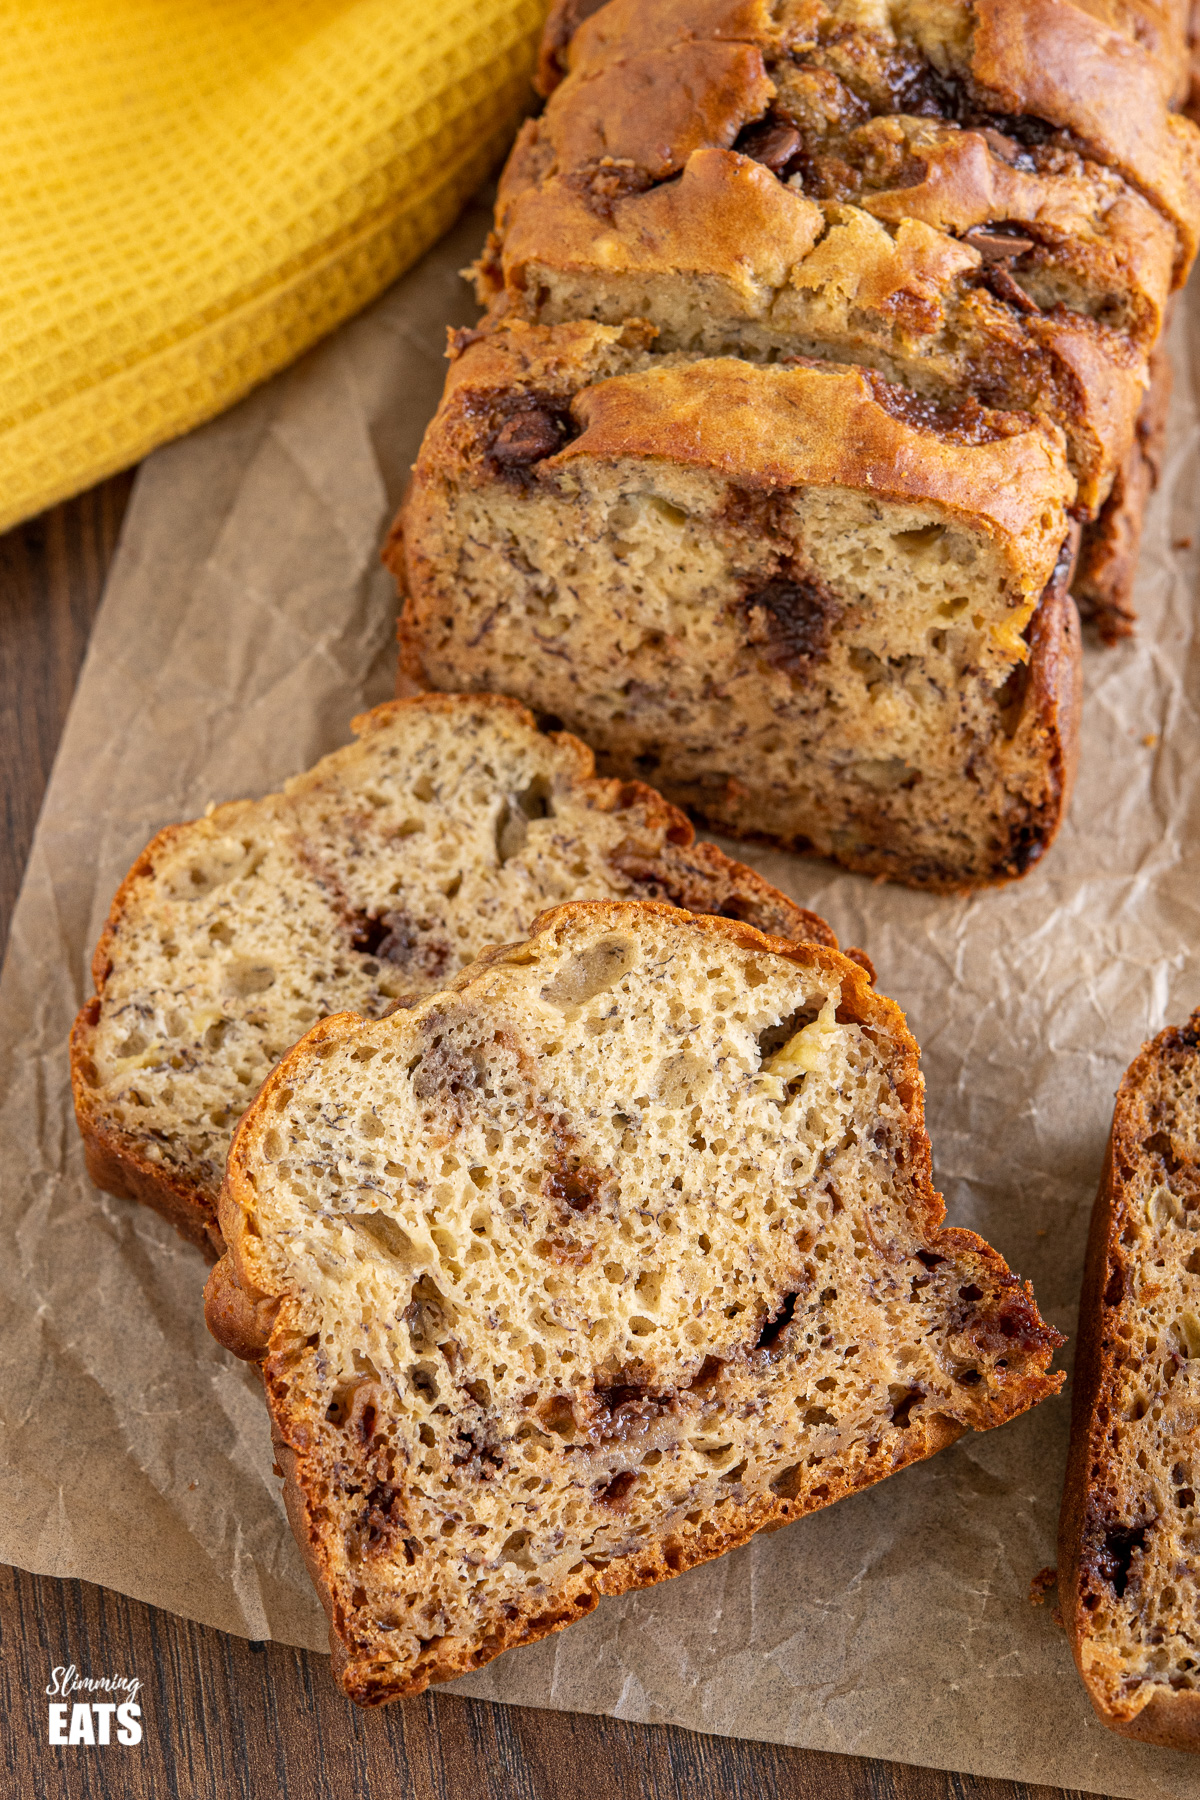 Sliced Healthy Banana and Chocolate Chip Loaf on parchment paper with yellow tea towel